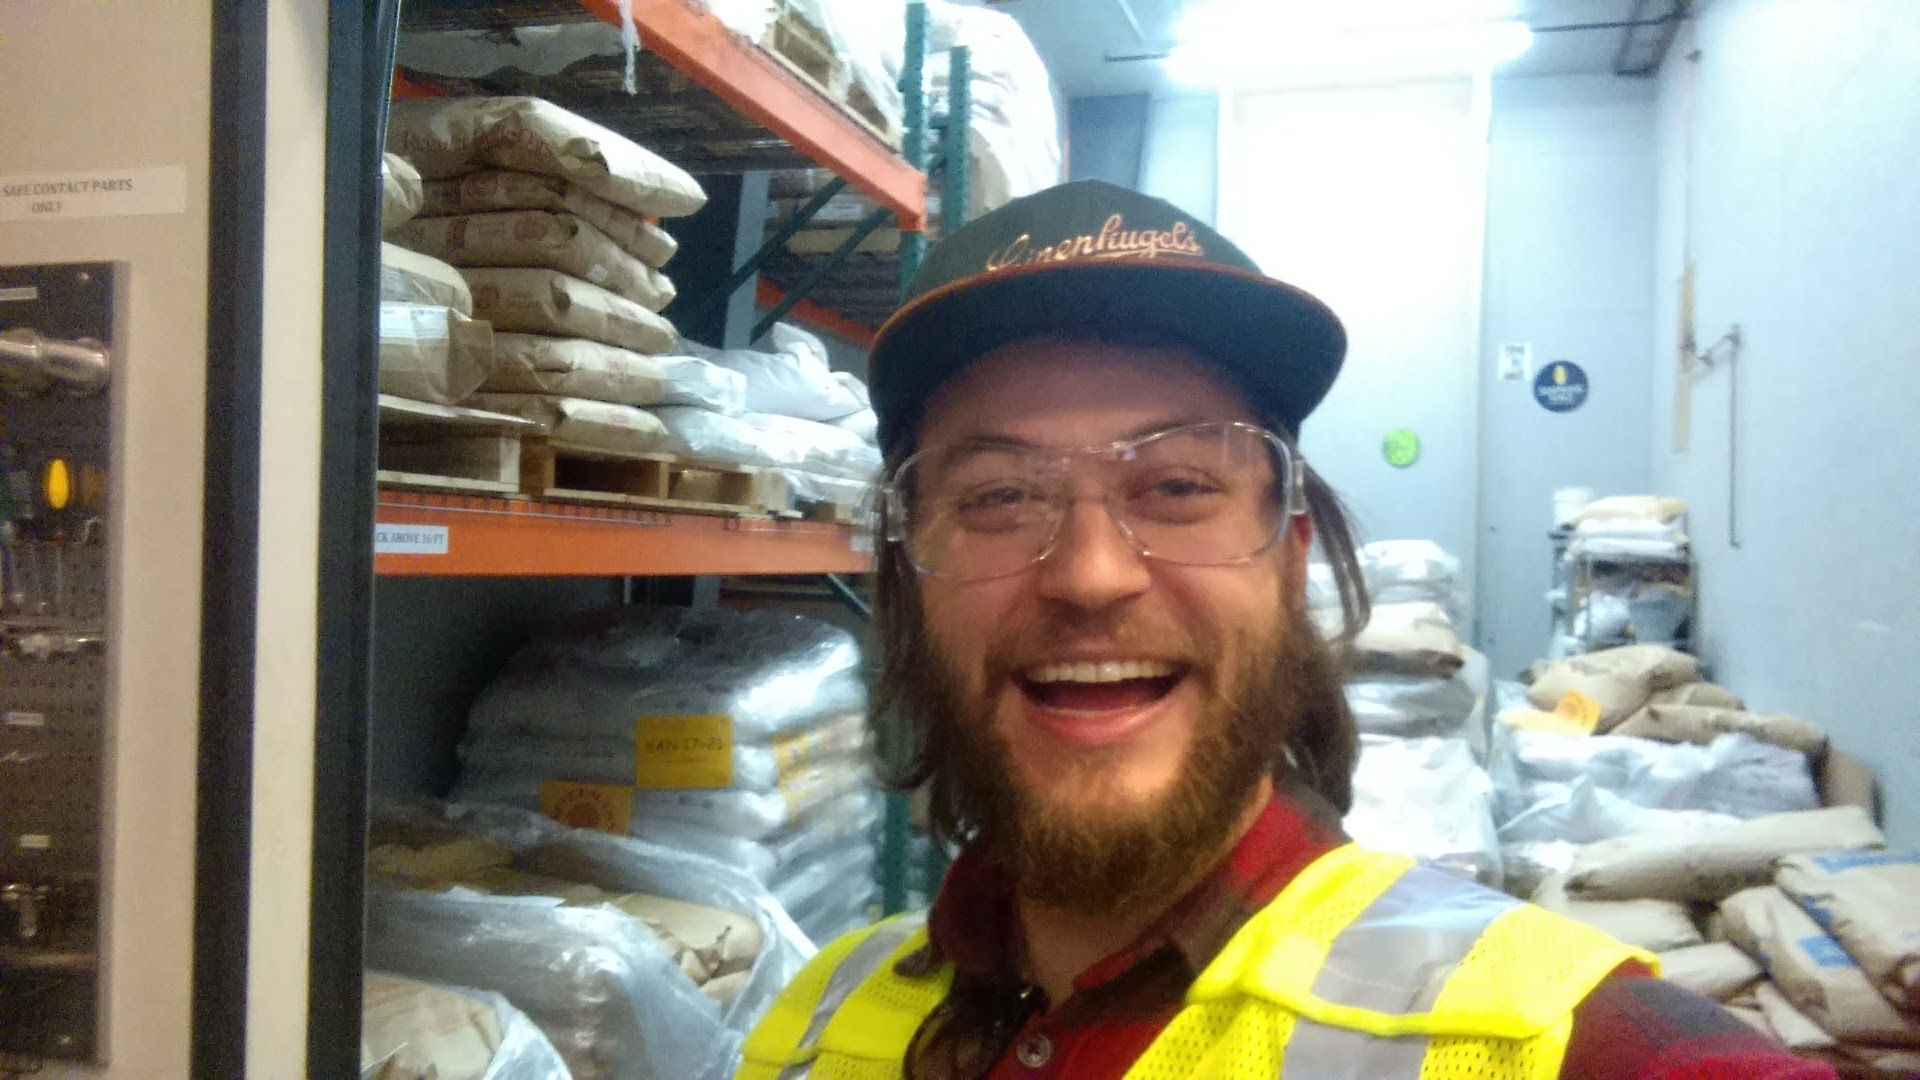 Cheesing hard in the store room at 10 Barrel